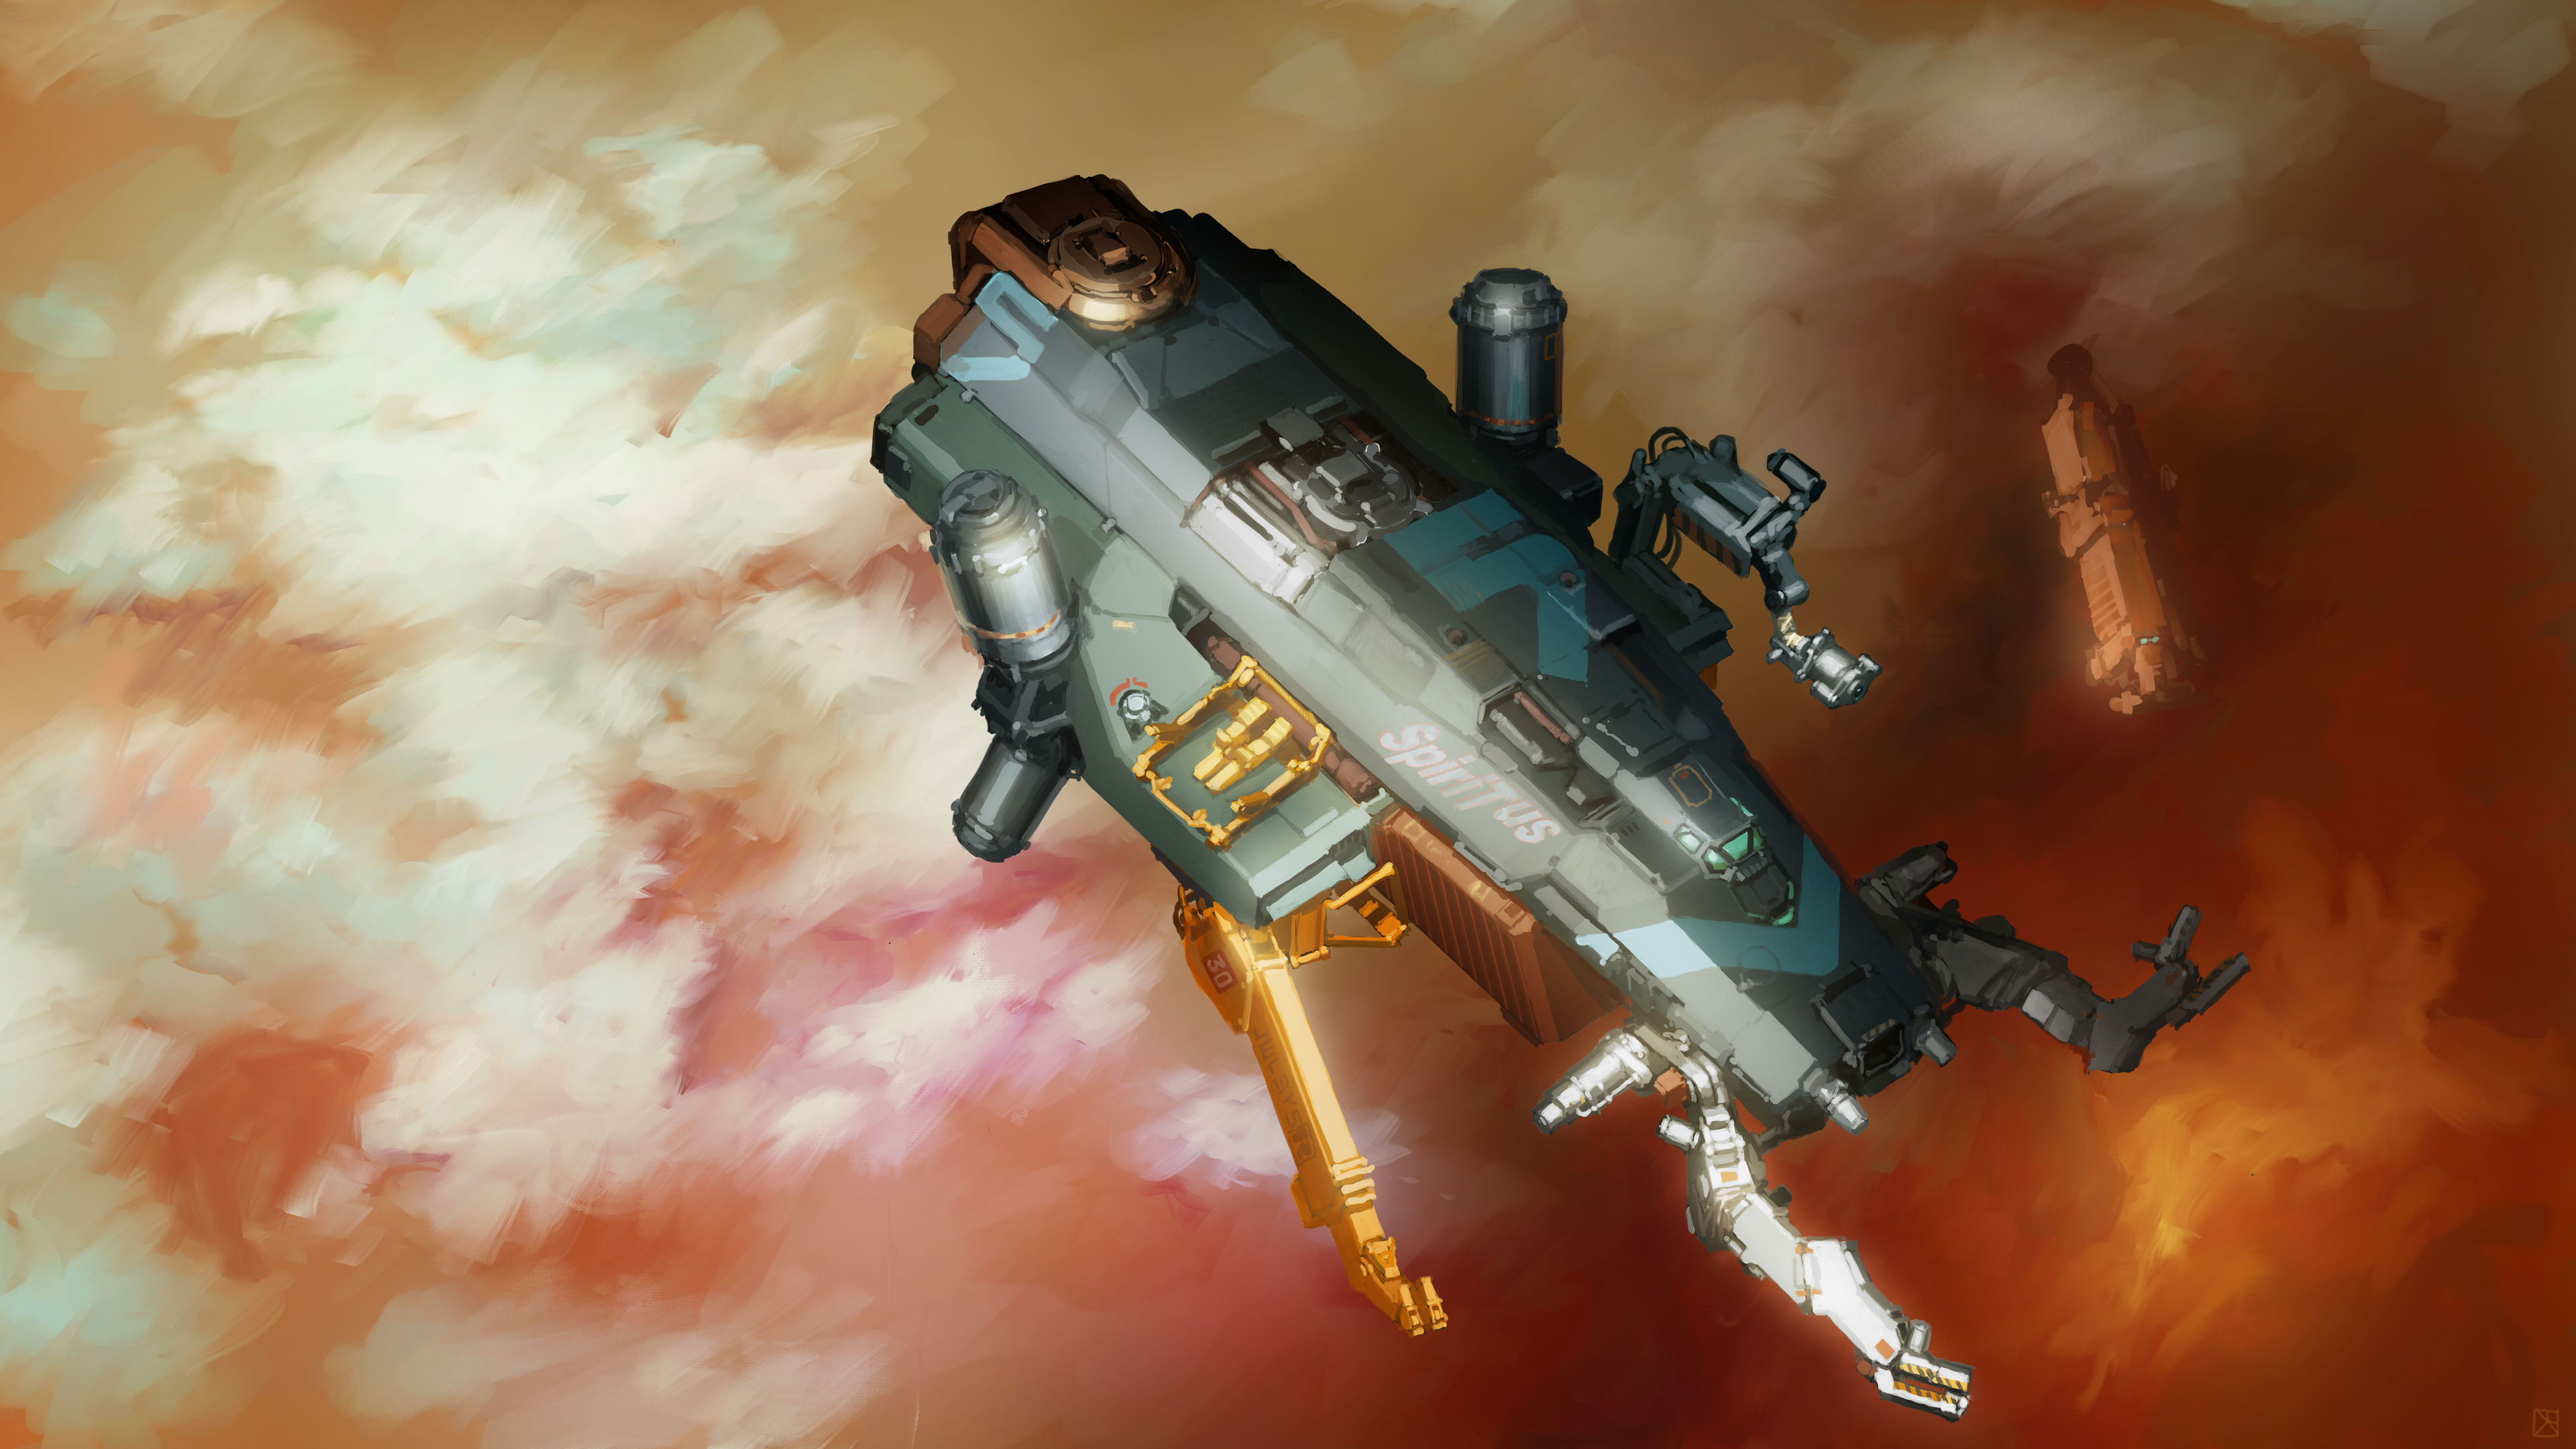 The design worked into a scene. The grav tug is lending aid to a cargo vessel having difficulty above Saturn.